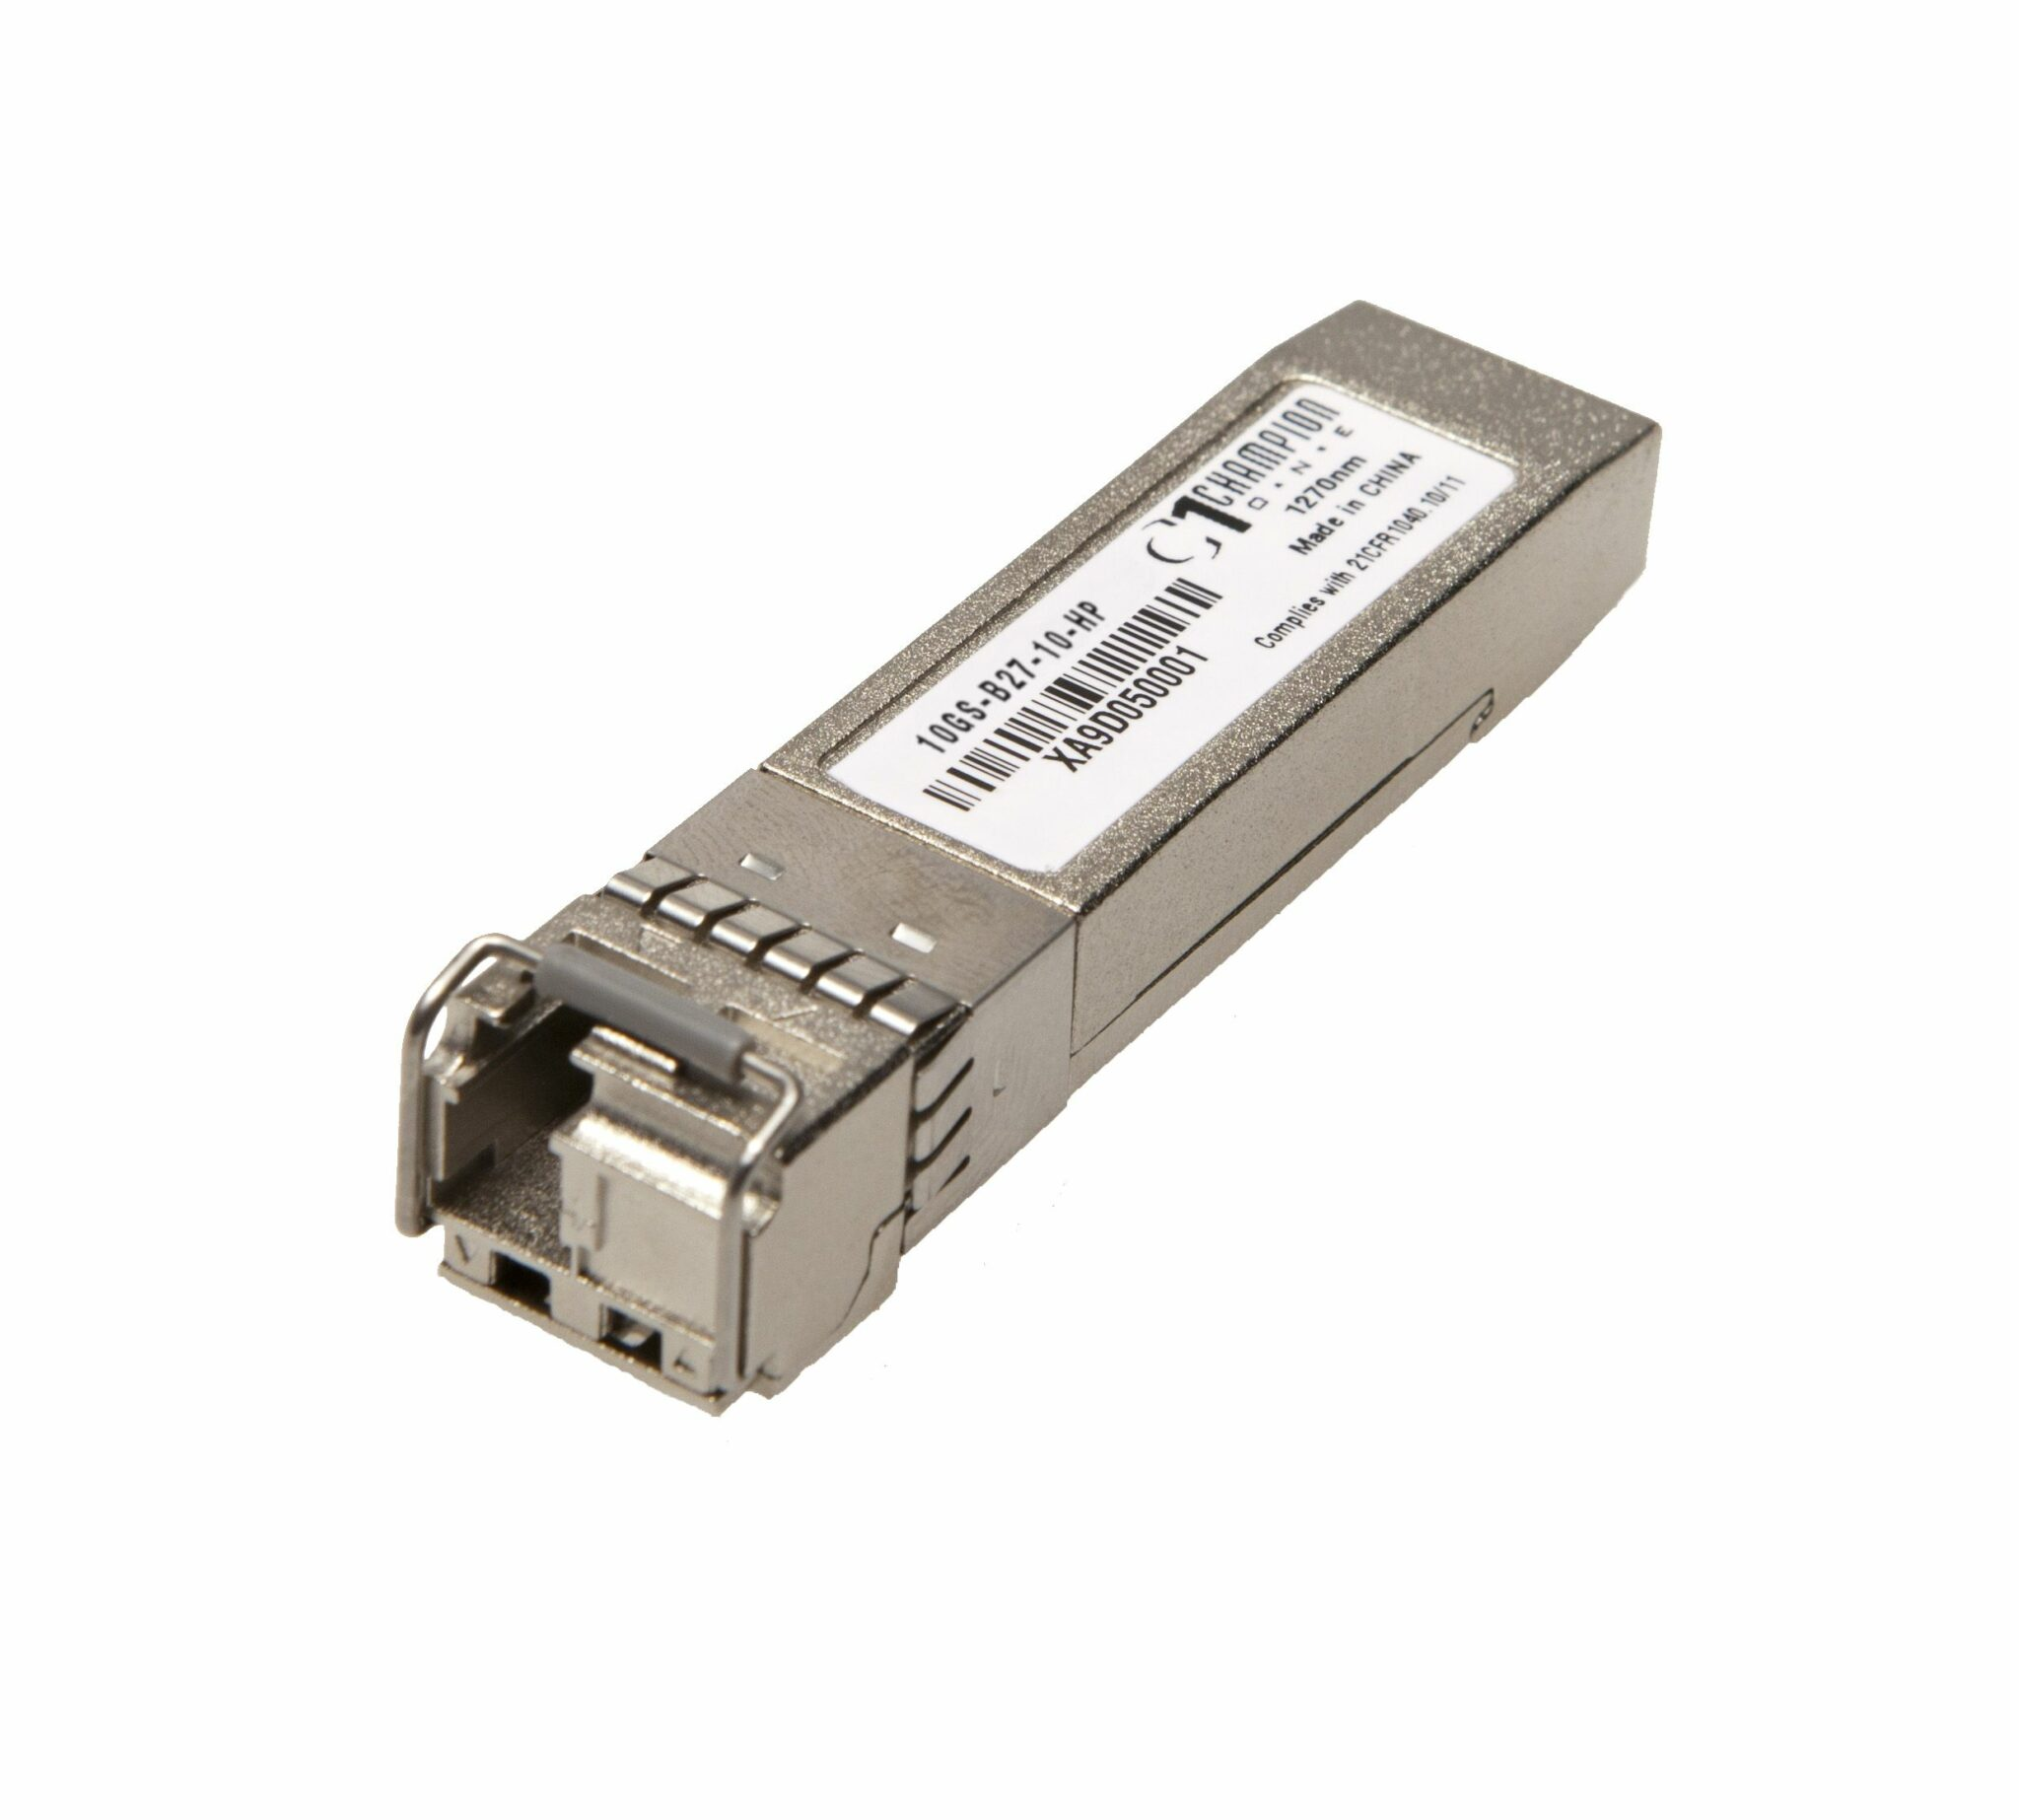 SFP+ SF 10GBase-LR 1270nm 10km Transceiver, HP Systems compatible